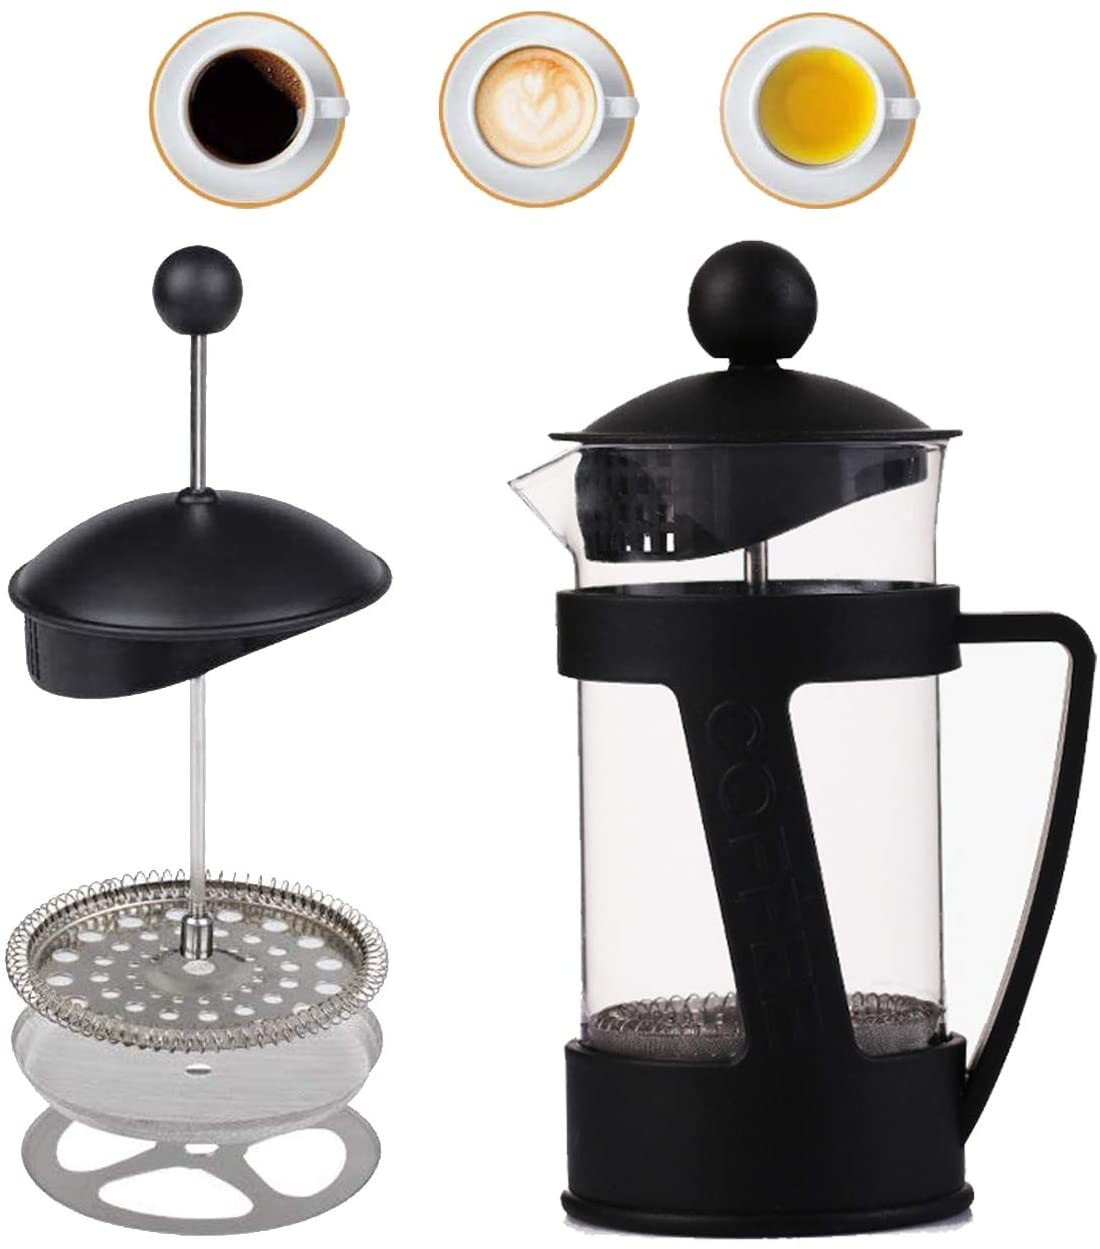 Upgraded French Press Coffee Tea Maker - Thicker Durable Heat Resistant Borosilicate Glass Ground